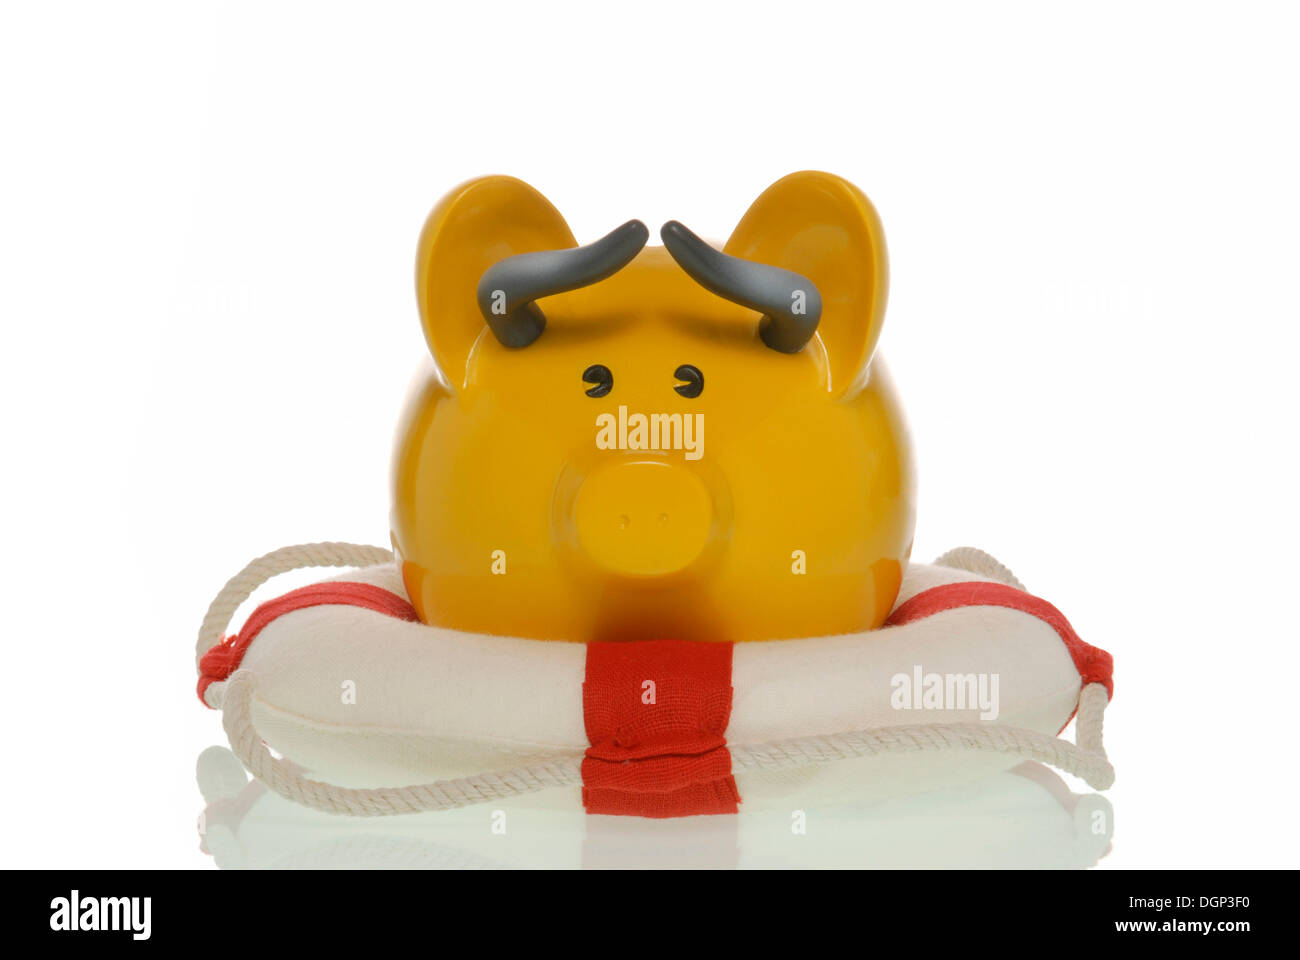 Piggy bank with horns like a stock market bull in a life ring, symbolic image for saving the stock market - Stock Image